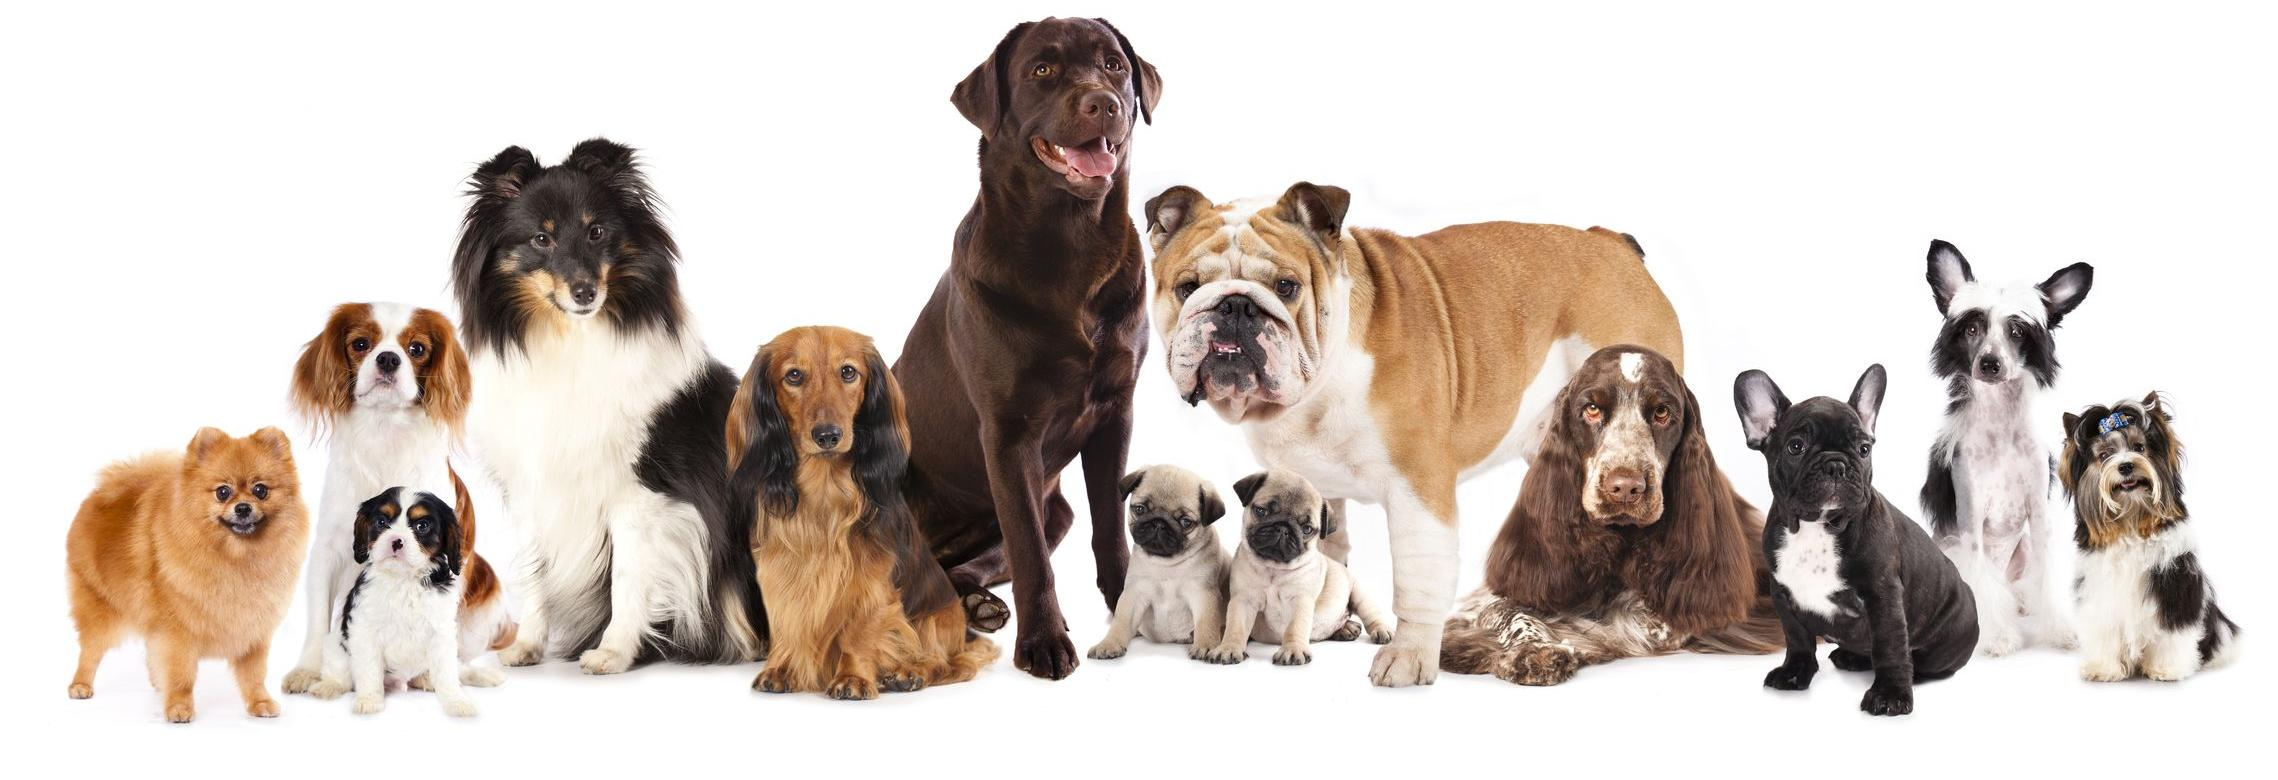 top dawg pet grooming fountain valley ca  dog grooming coupons near me